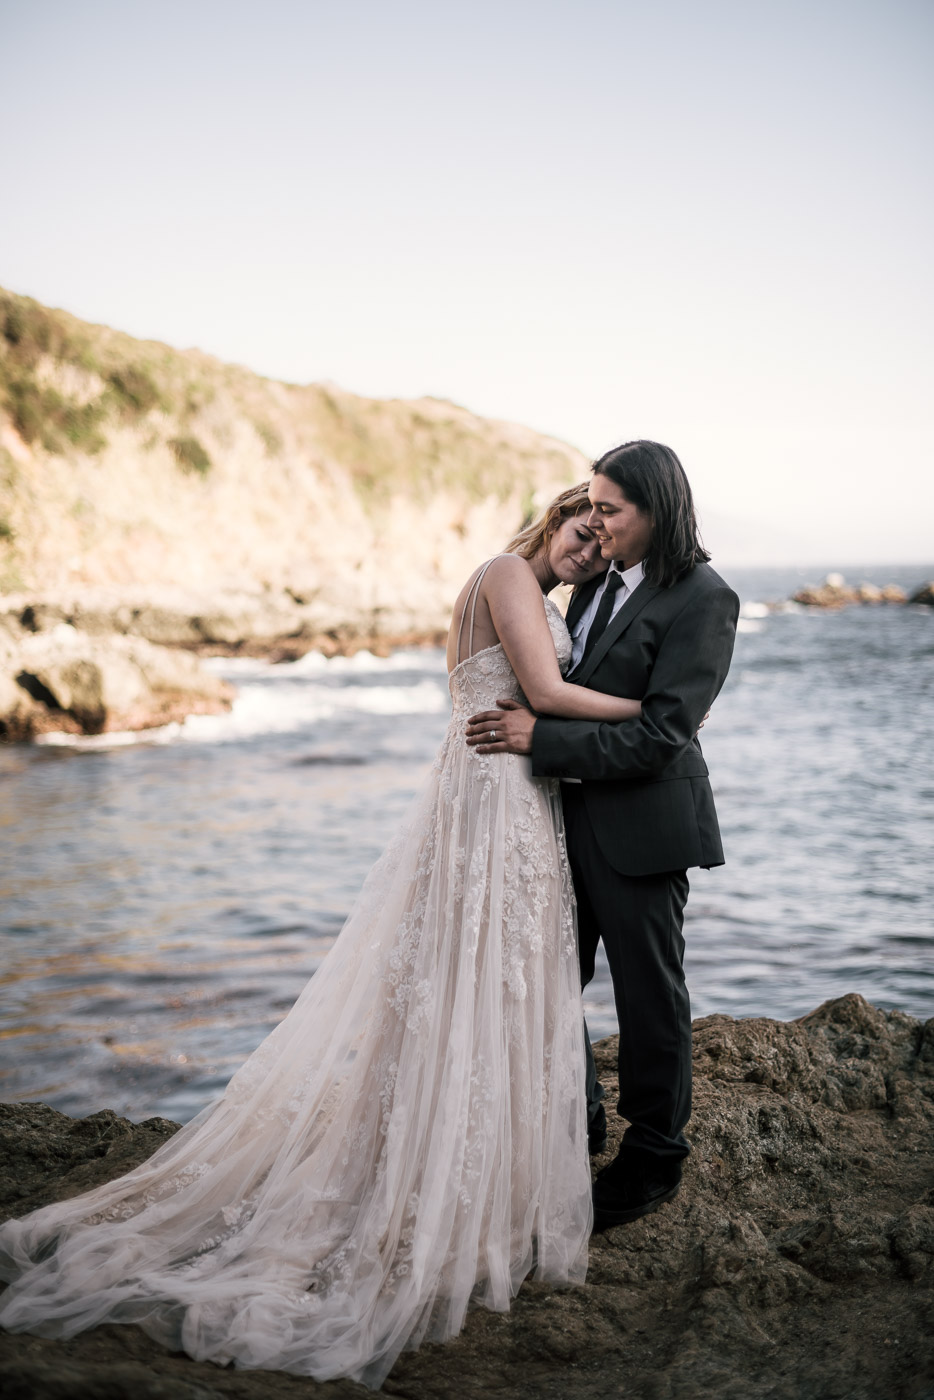 Two lovers have a romantic moment on the rocky shores of a national park after their intimate wedding.